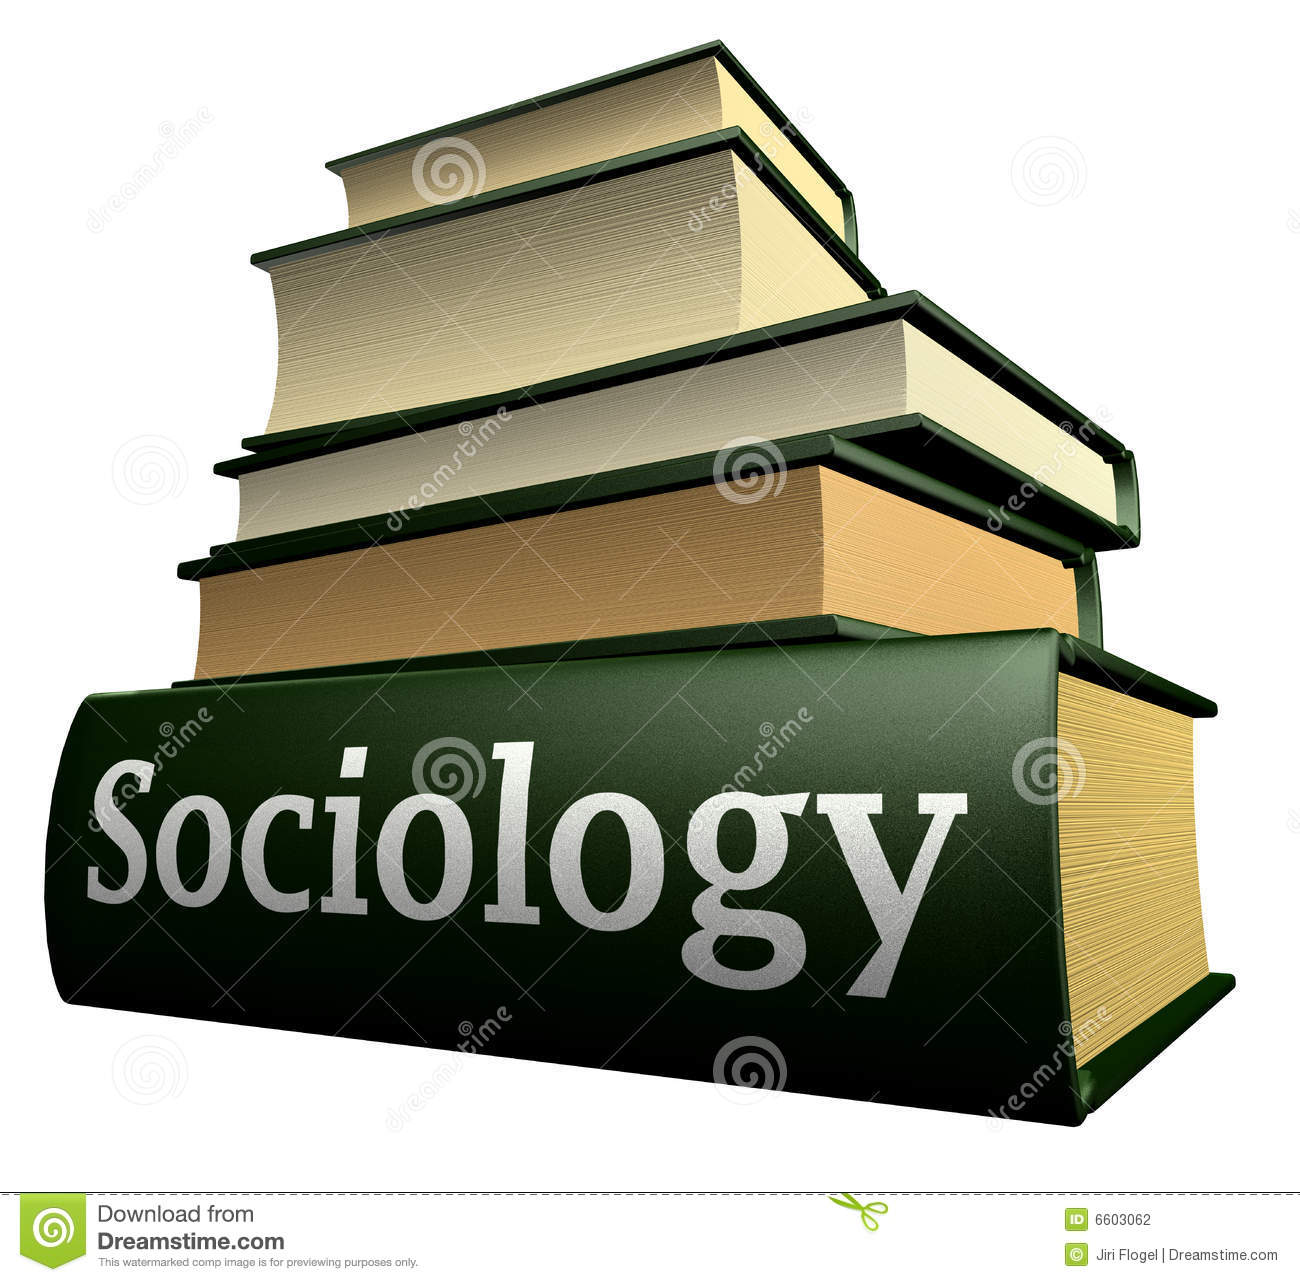 sociology education The curriculum of the sociology and education program emphasizes issues in urban education, including the social organization of urban schools and school systems, and the success or failure of urban schools in meeting the educational needs of the diverse populations they serve.